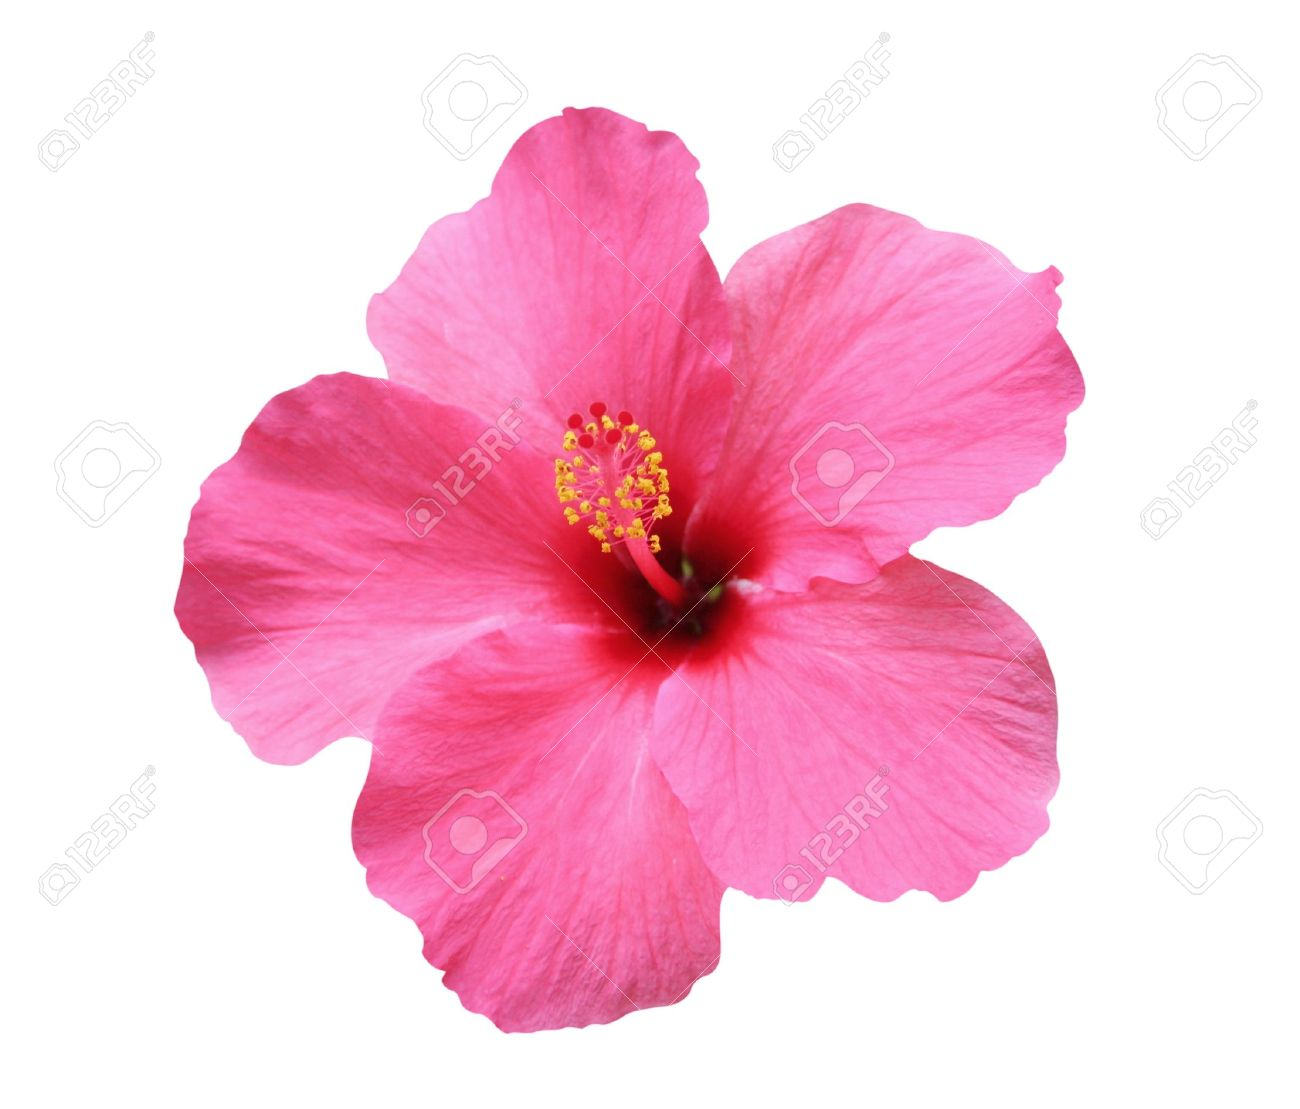 hawaiian flower images  stock pictures. royalty free hawaiian, Natural flower